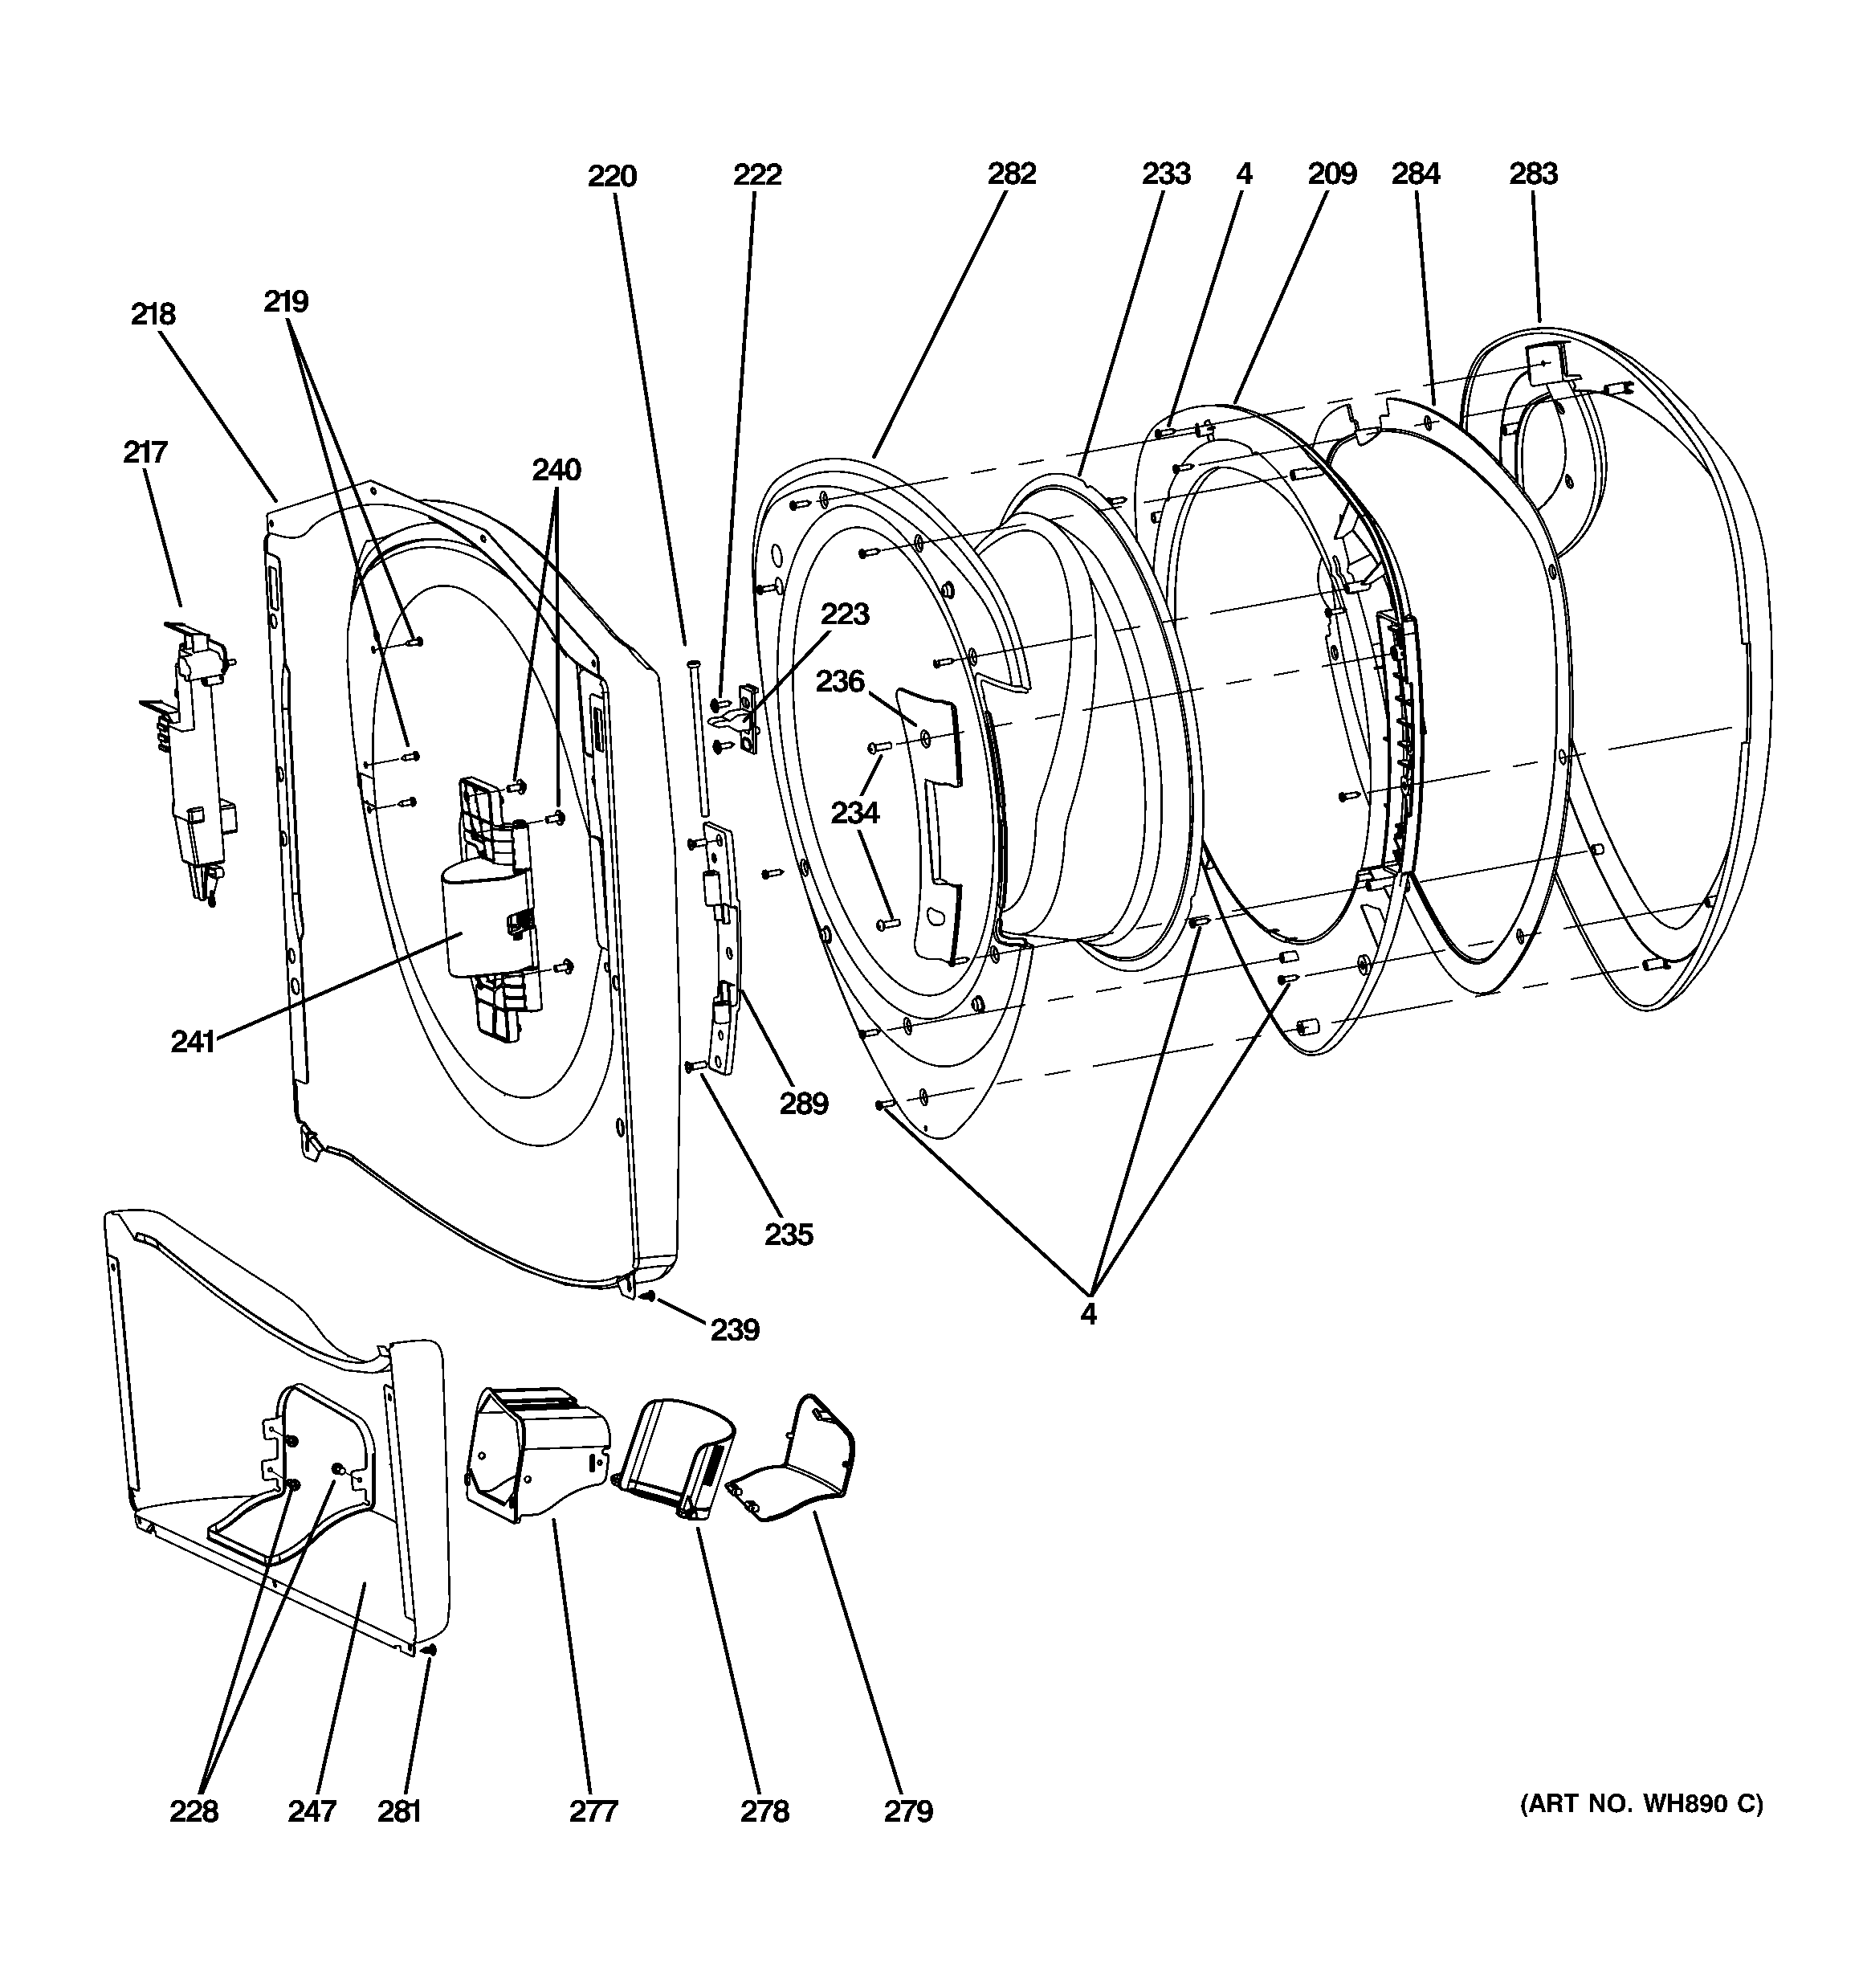 ge front load washer diagram 1994 ford bronco fuel pump wiring model wpdh8800j0mg residential washers genuine parts